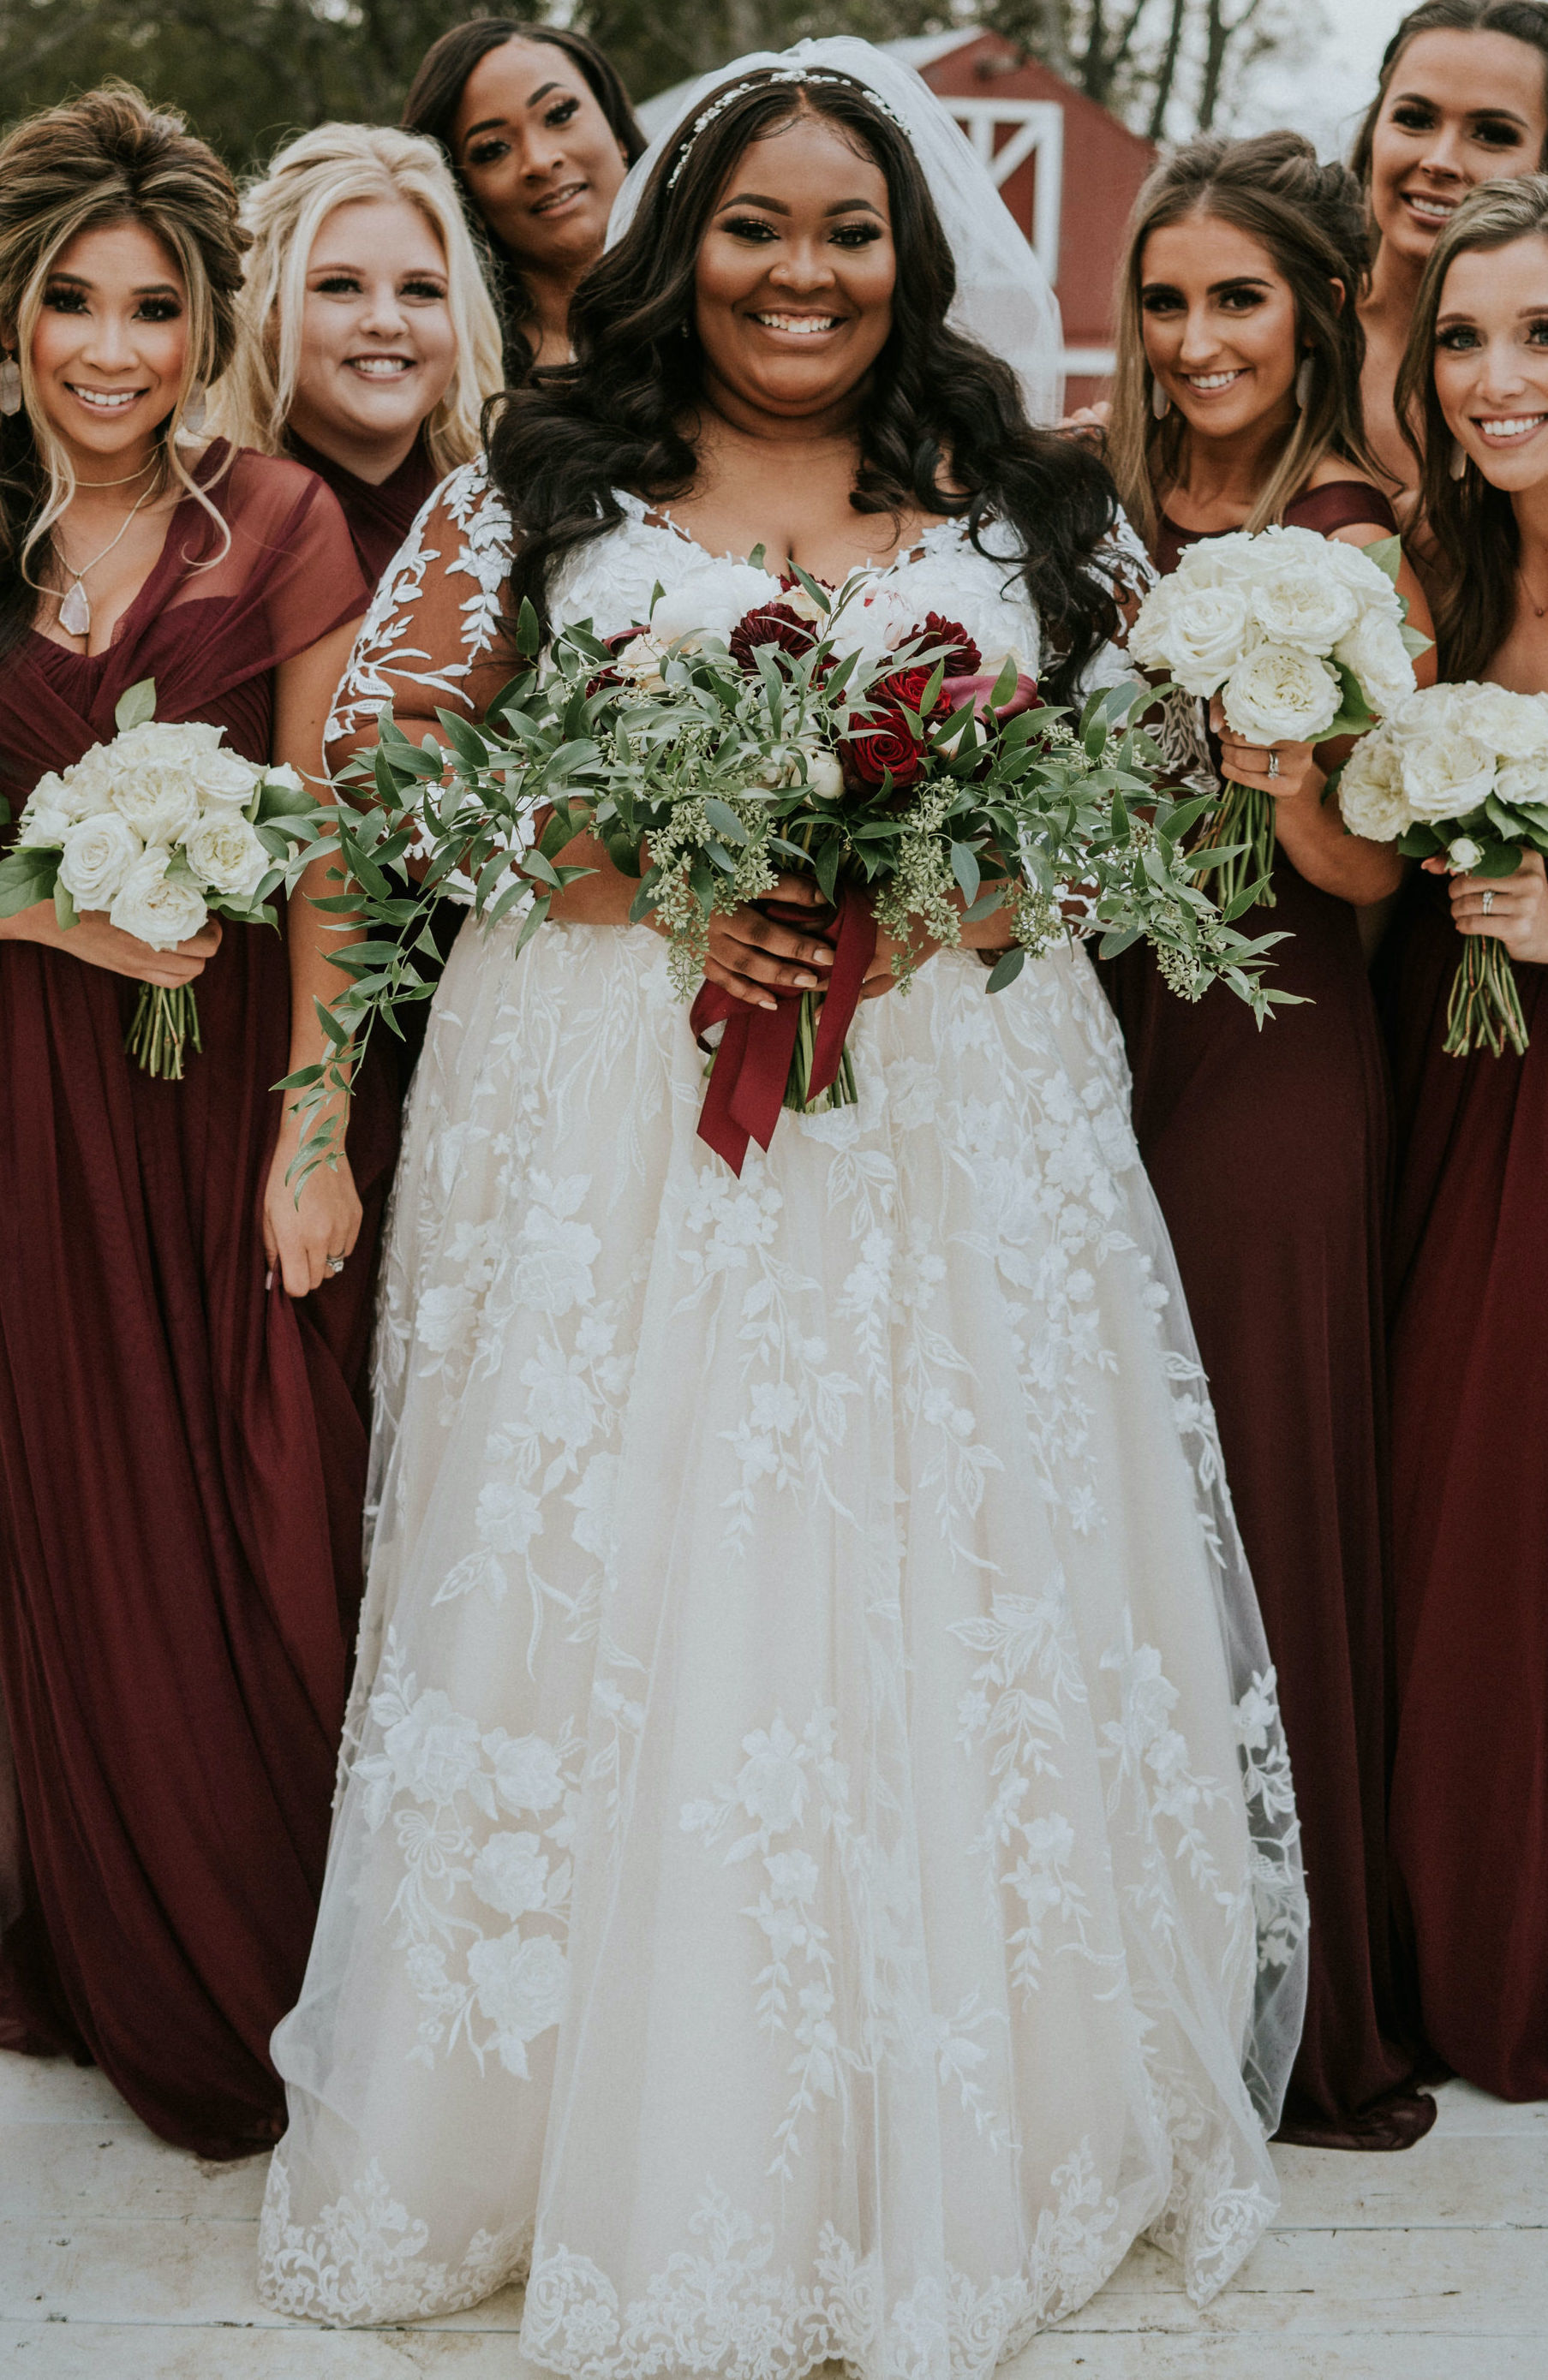 Anomalie is the best choice for plus size brides who want a custom lace wedding dress online.